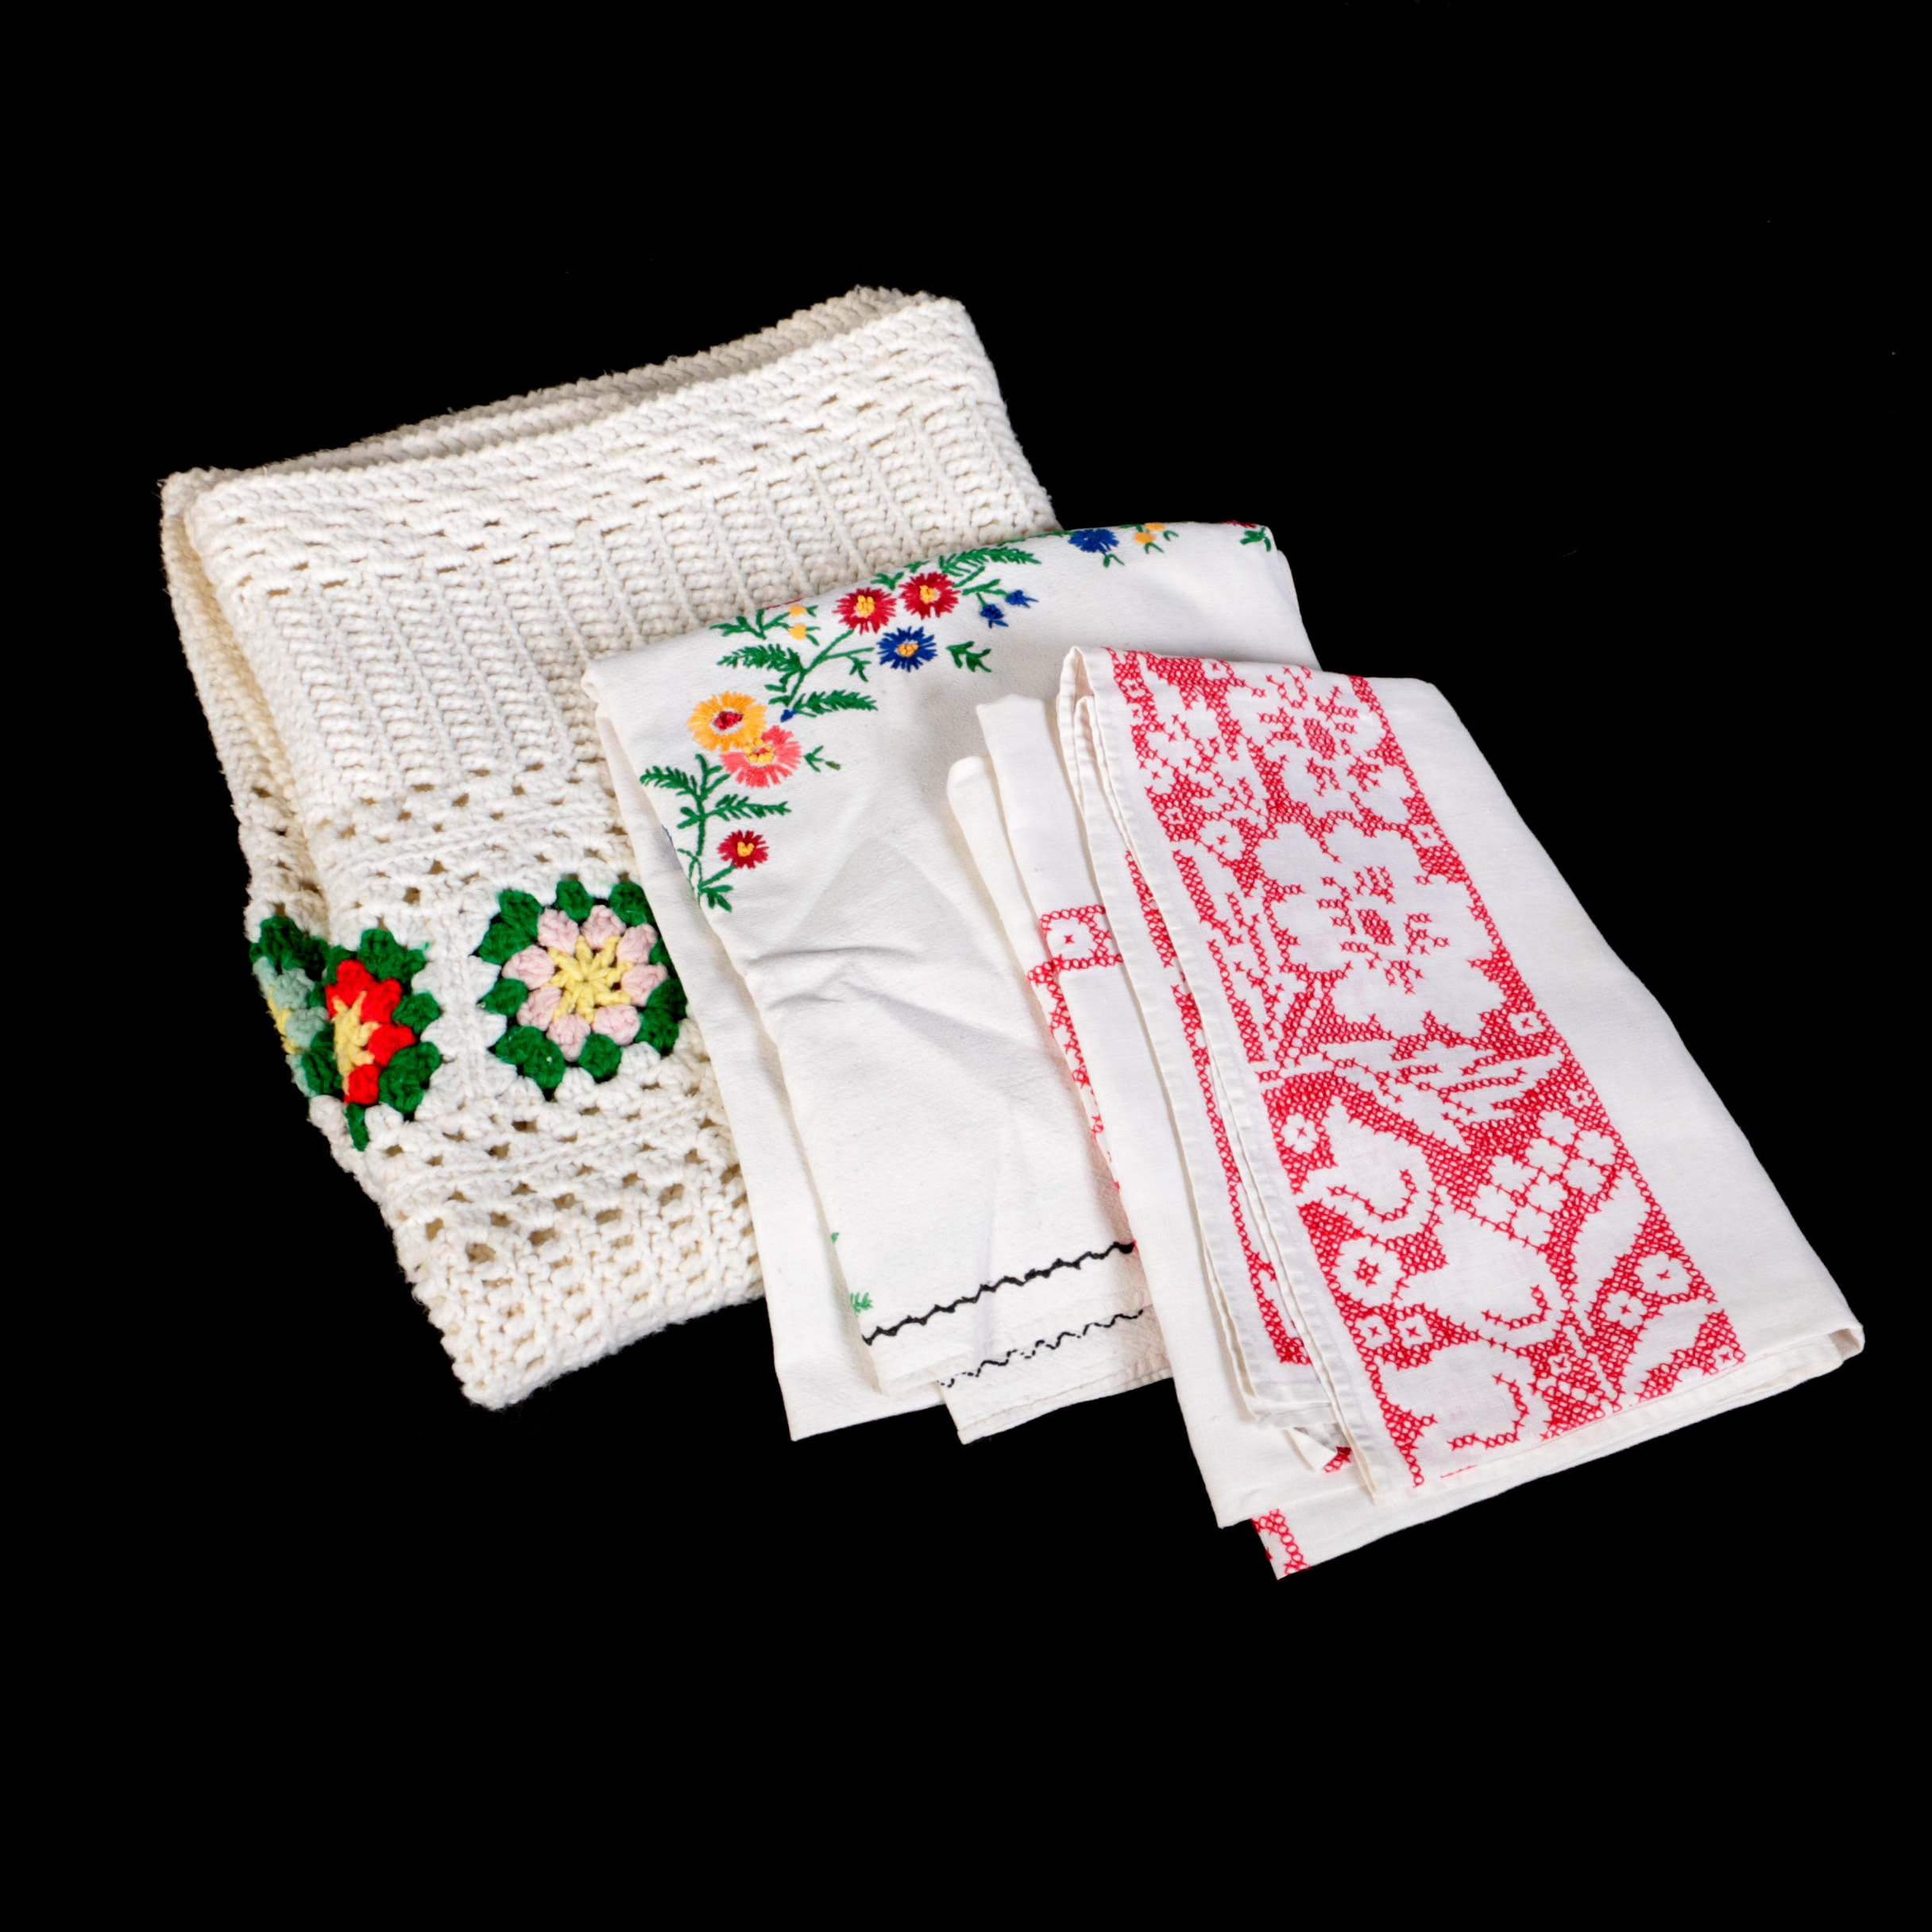 Crochet Afghan and Hand Embroidered Table Linens